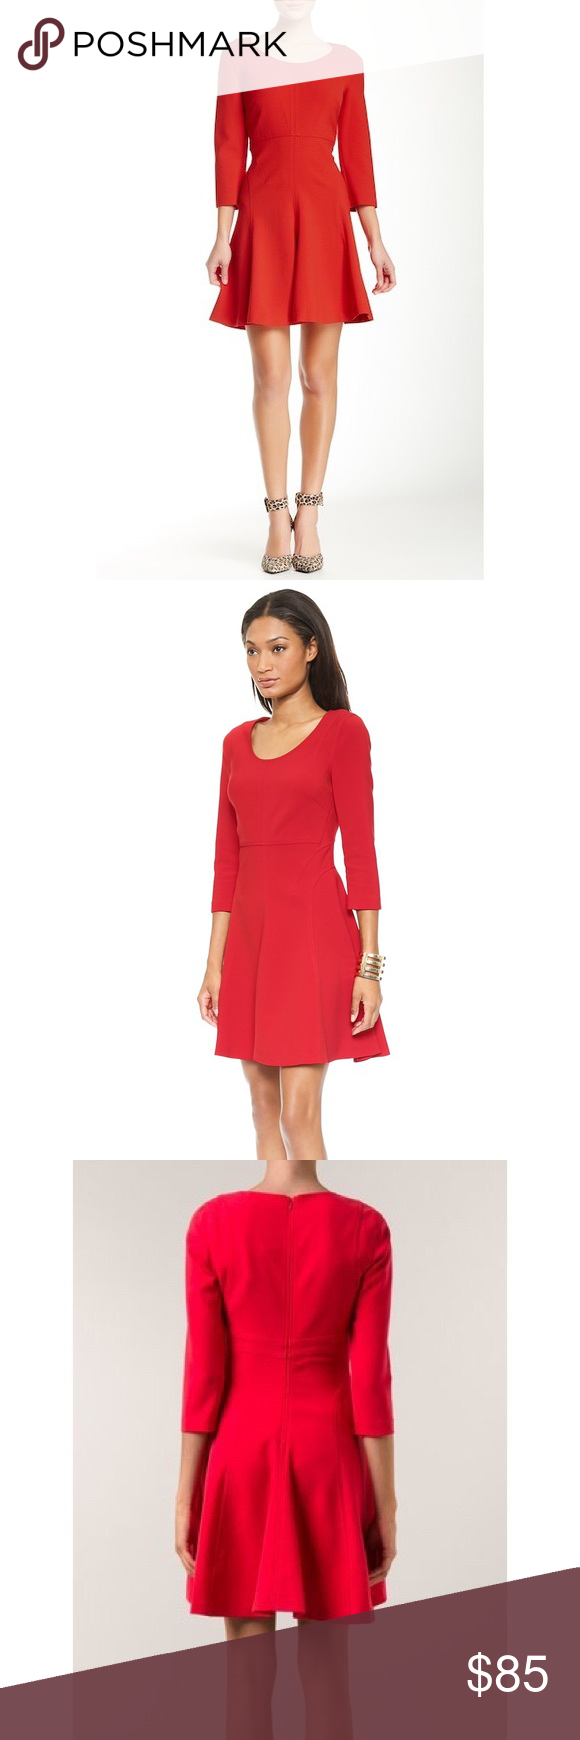 7432aa0a62a Diane Von Furstenberg Paloma fit and flare dress Gorgeous DVF Paloma dress  in poppy red. Fit and flare style with 3 4 sleeves. Hidden back zip. Scoop  neck.